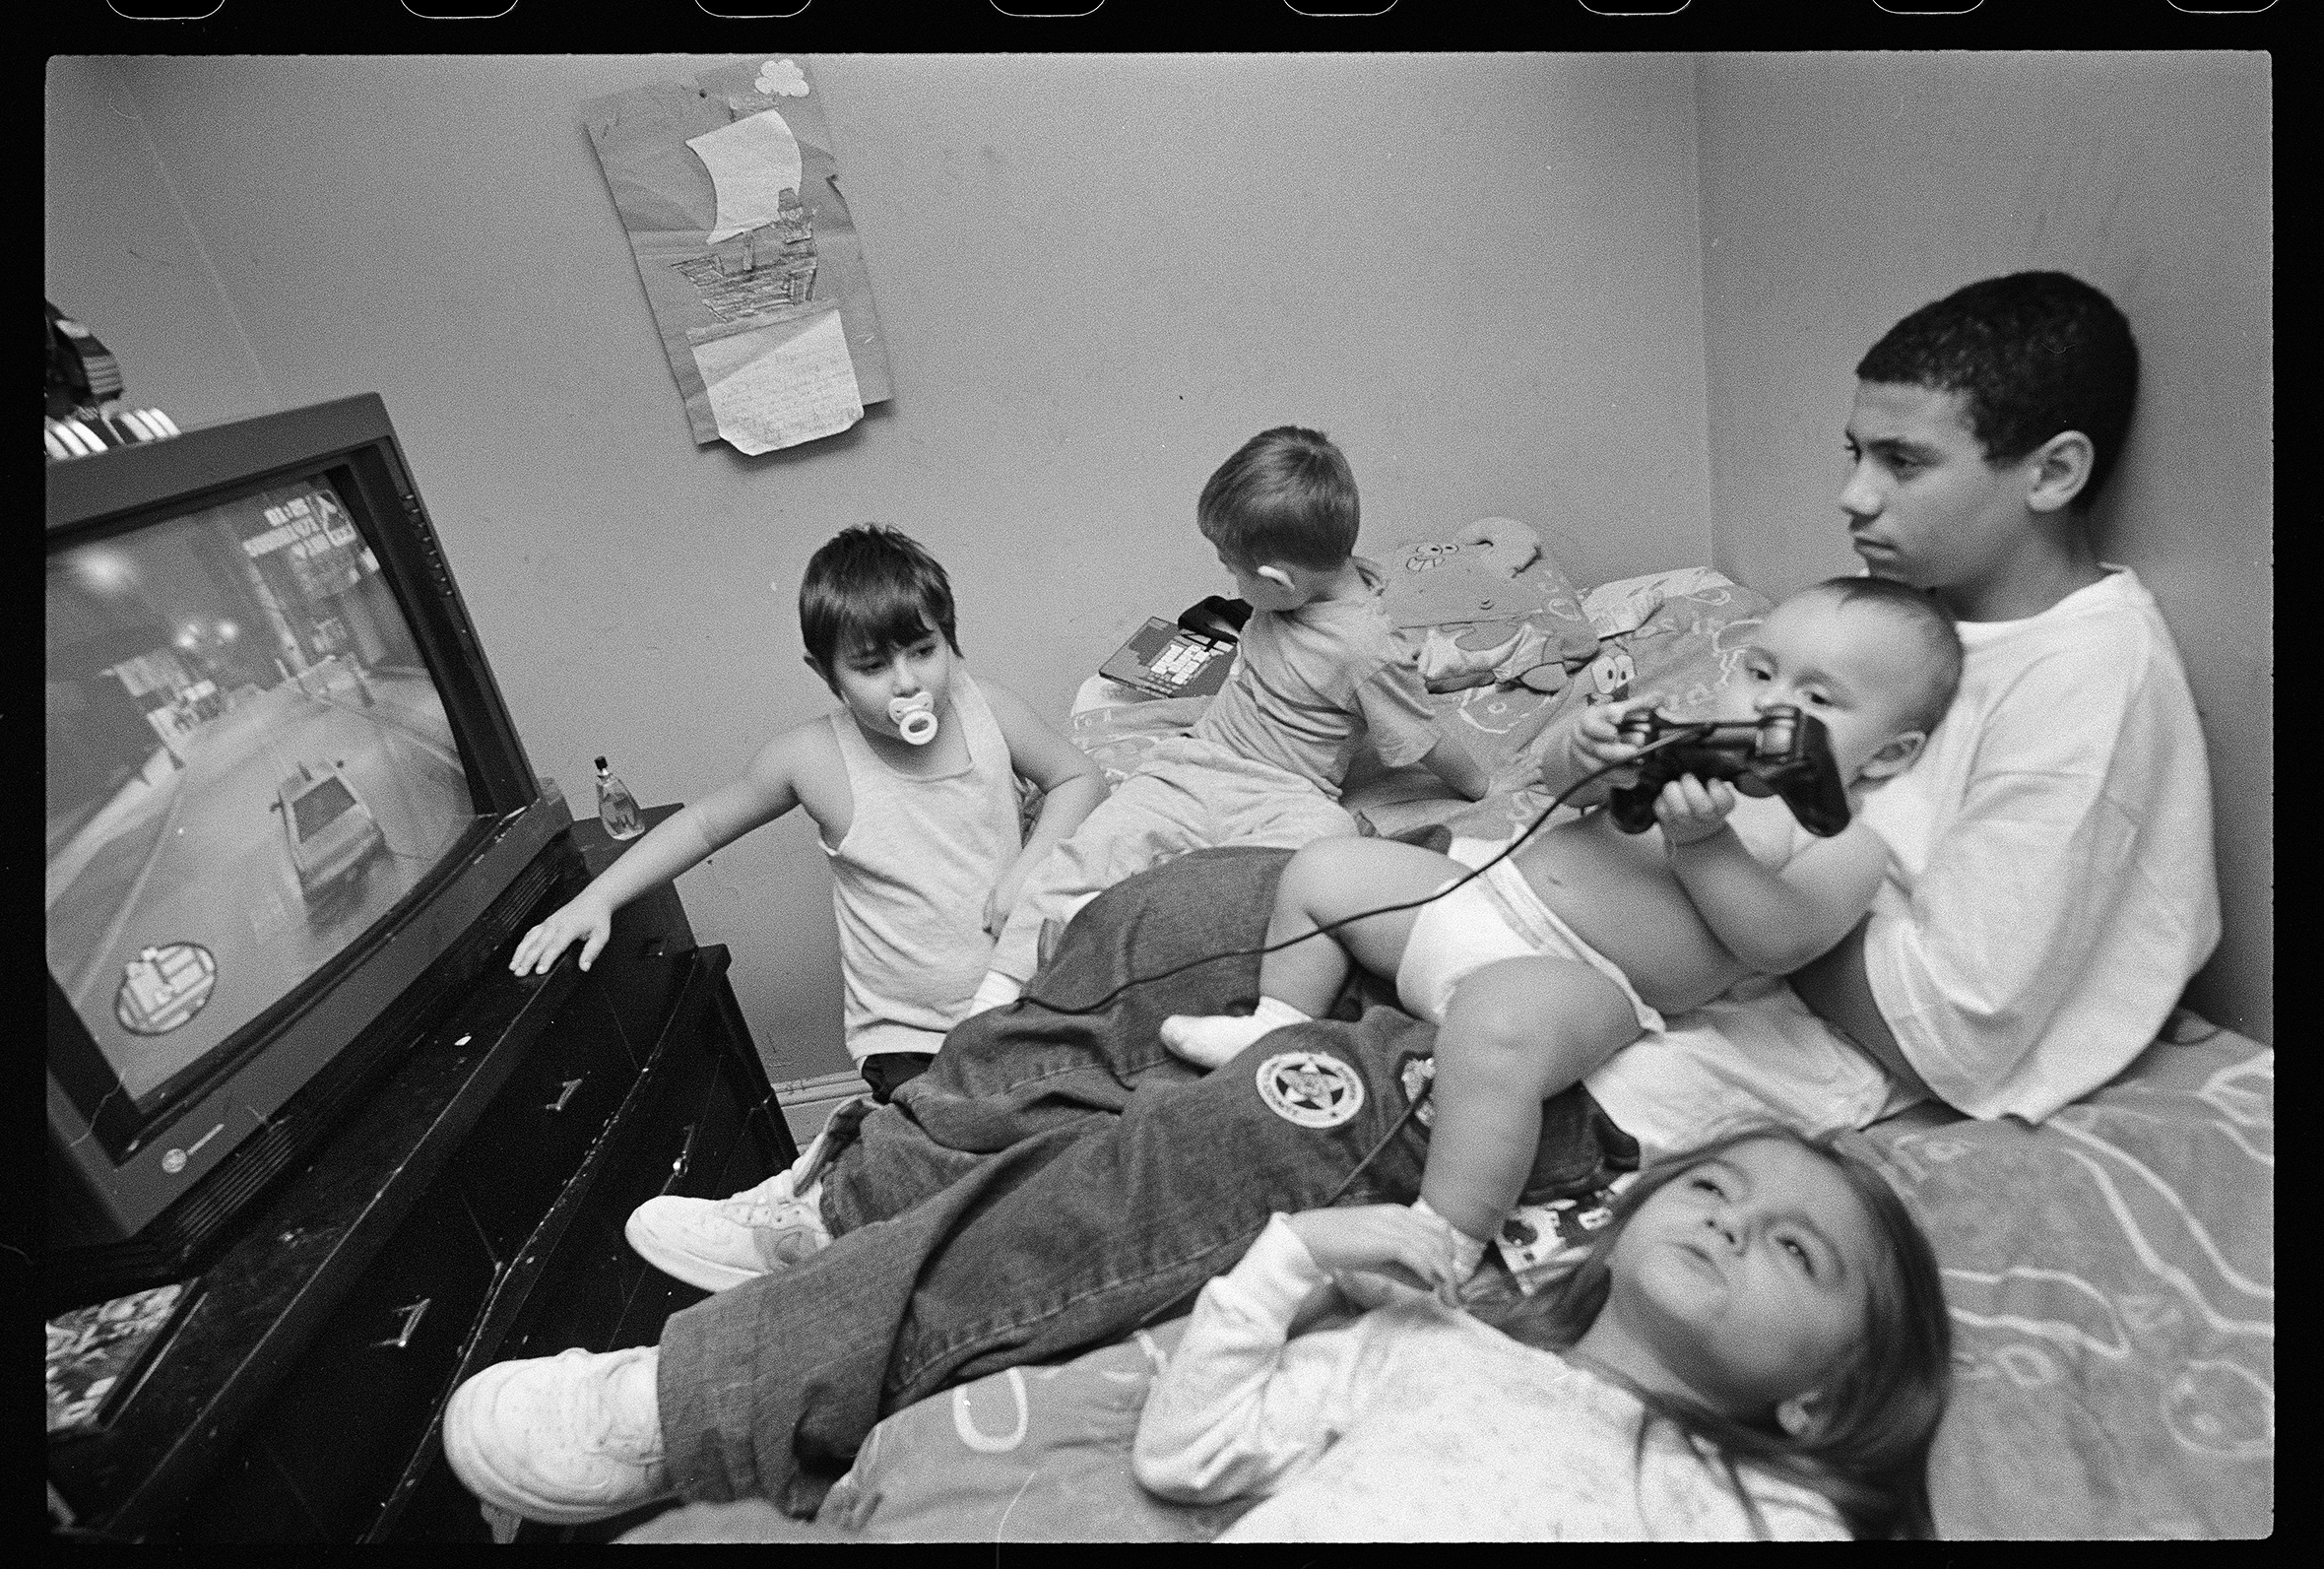 Little John, Little Jesse, Christy, Tony, and their friend Patrick                                playing Grand Theft Auto: San Andreas, 2004.